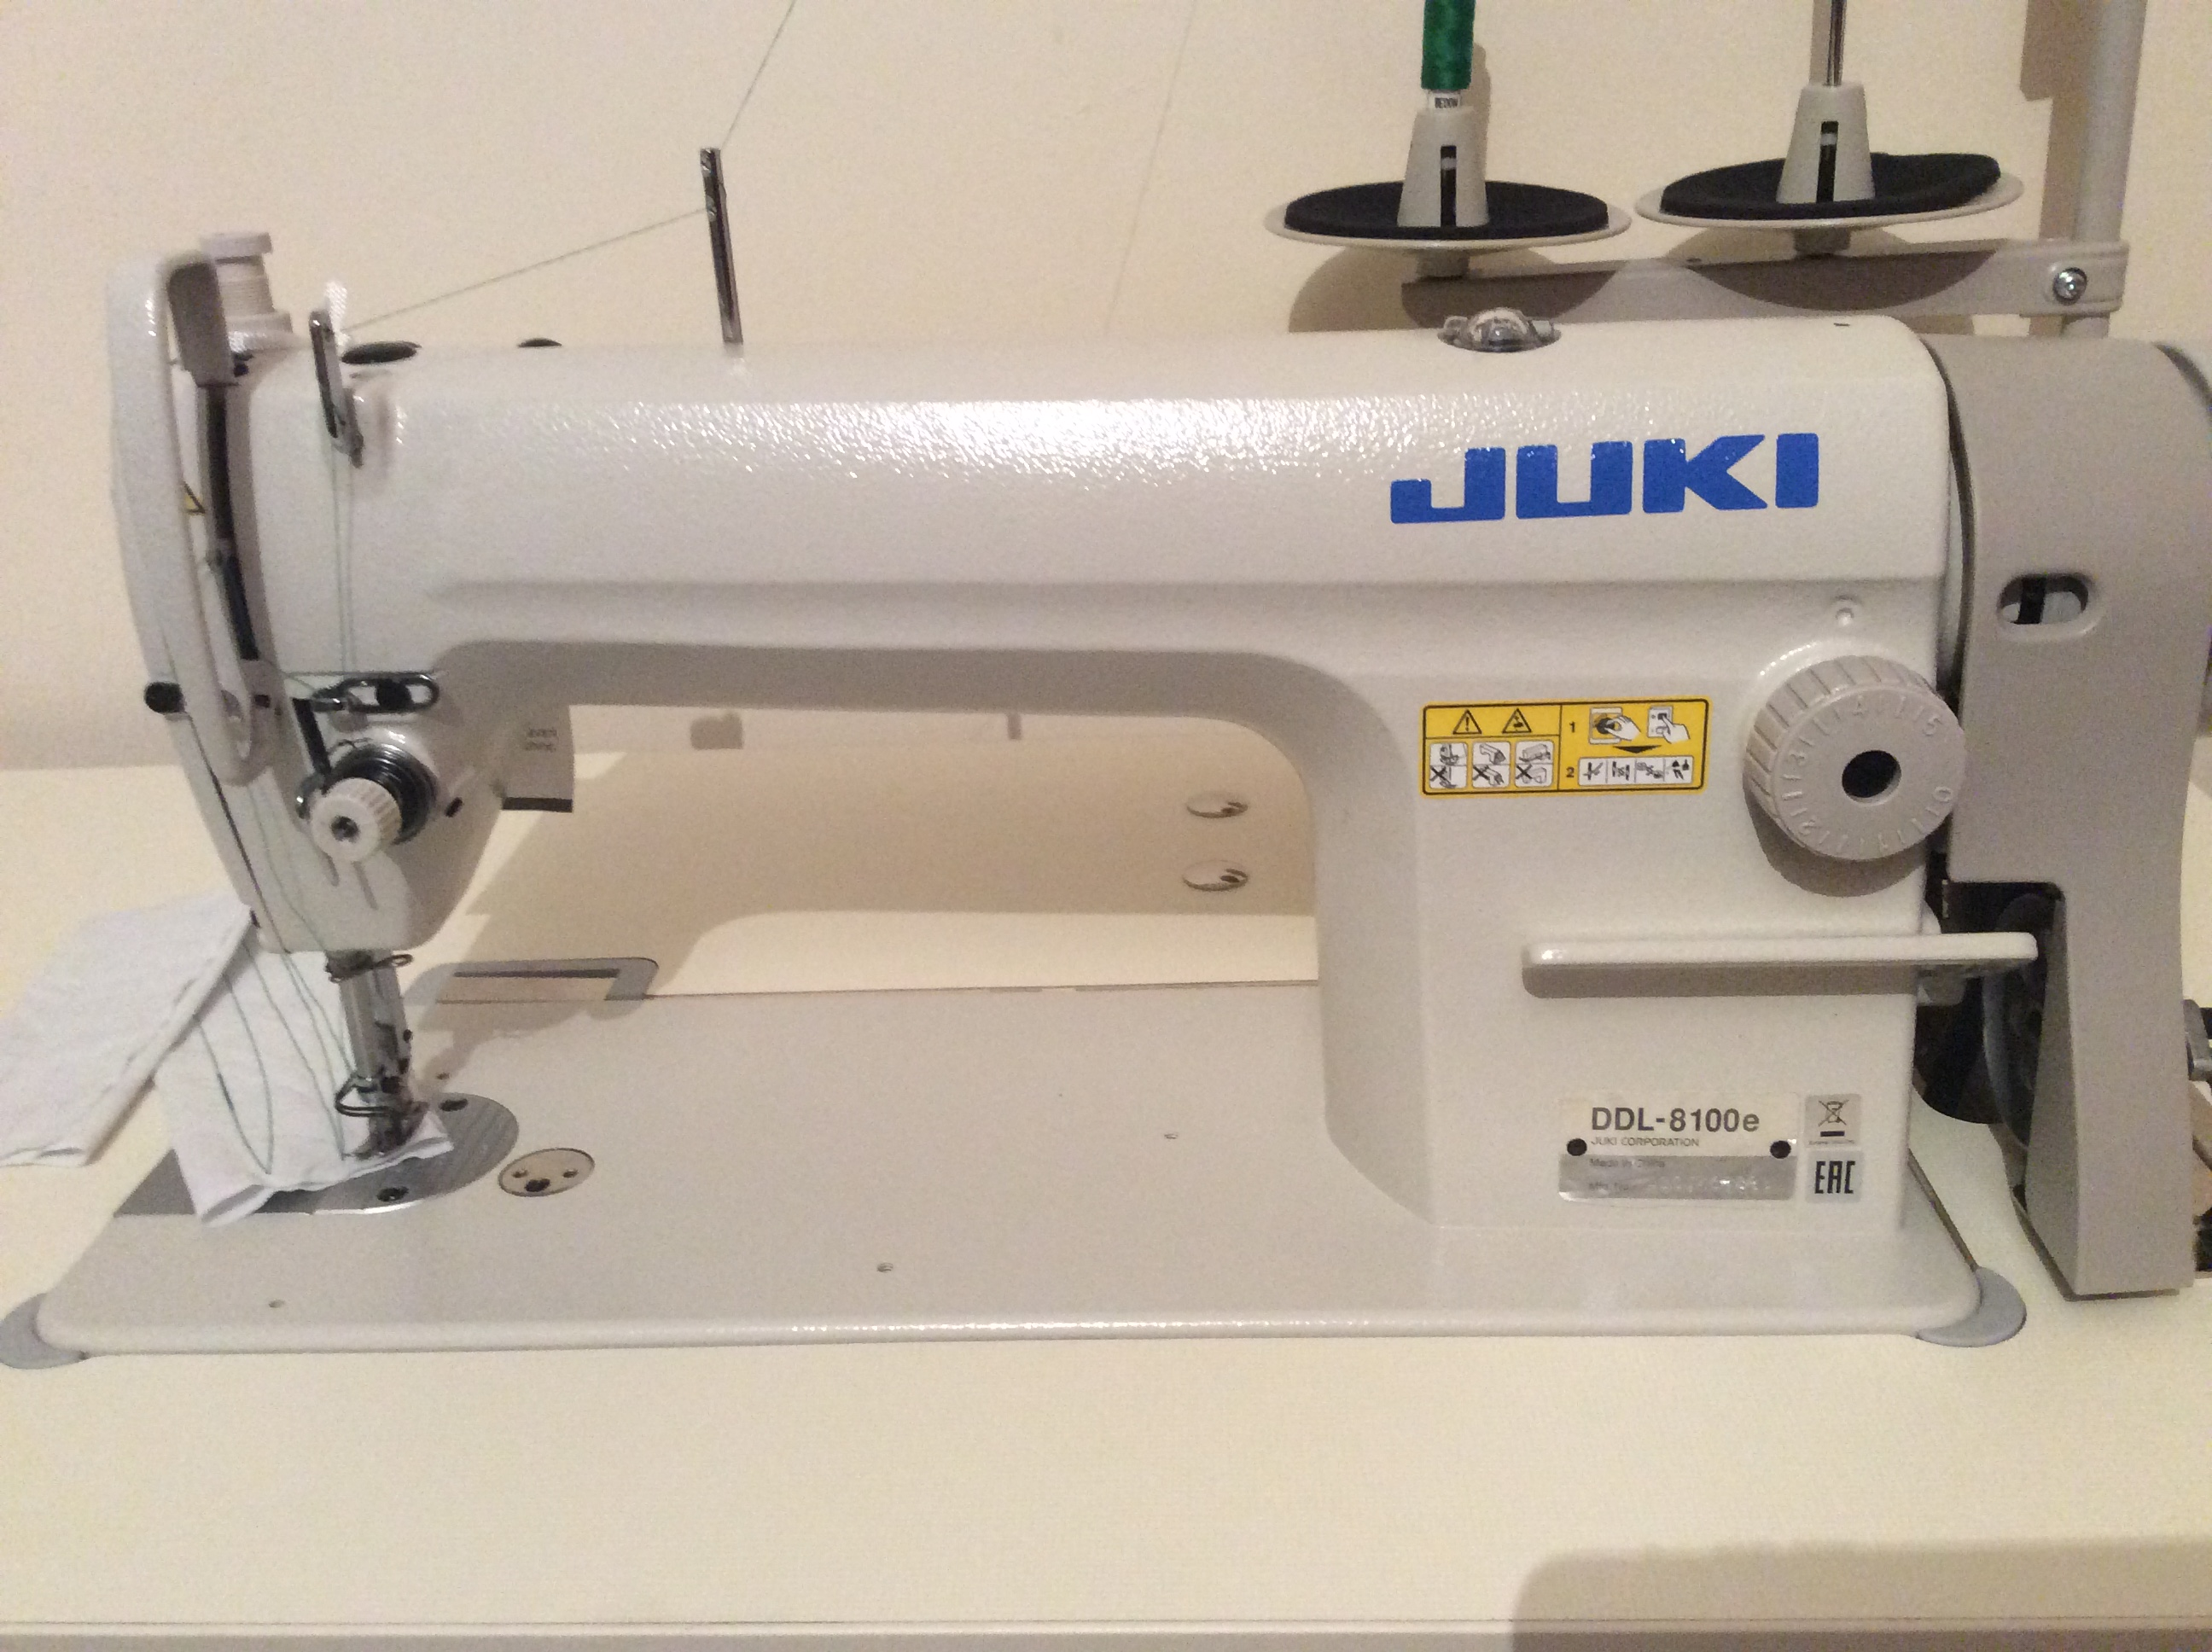 Juki 8100e Lockstitch Sewing Machine Complete on Stand